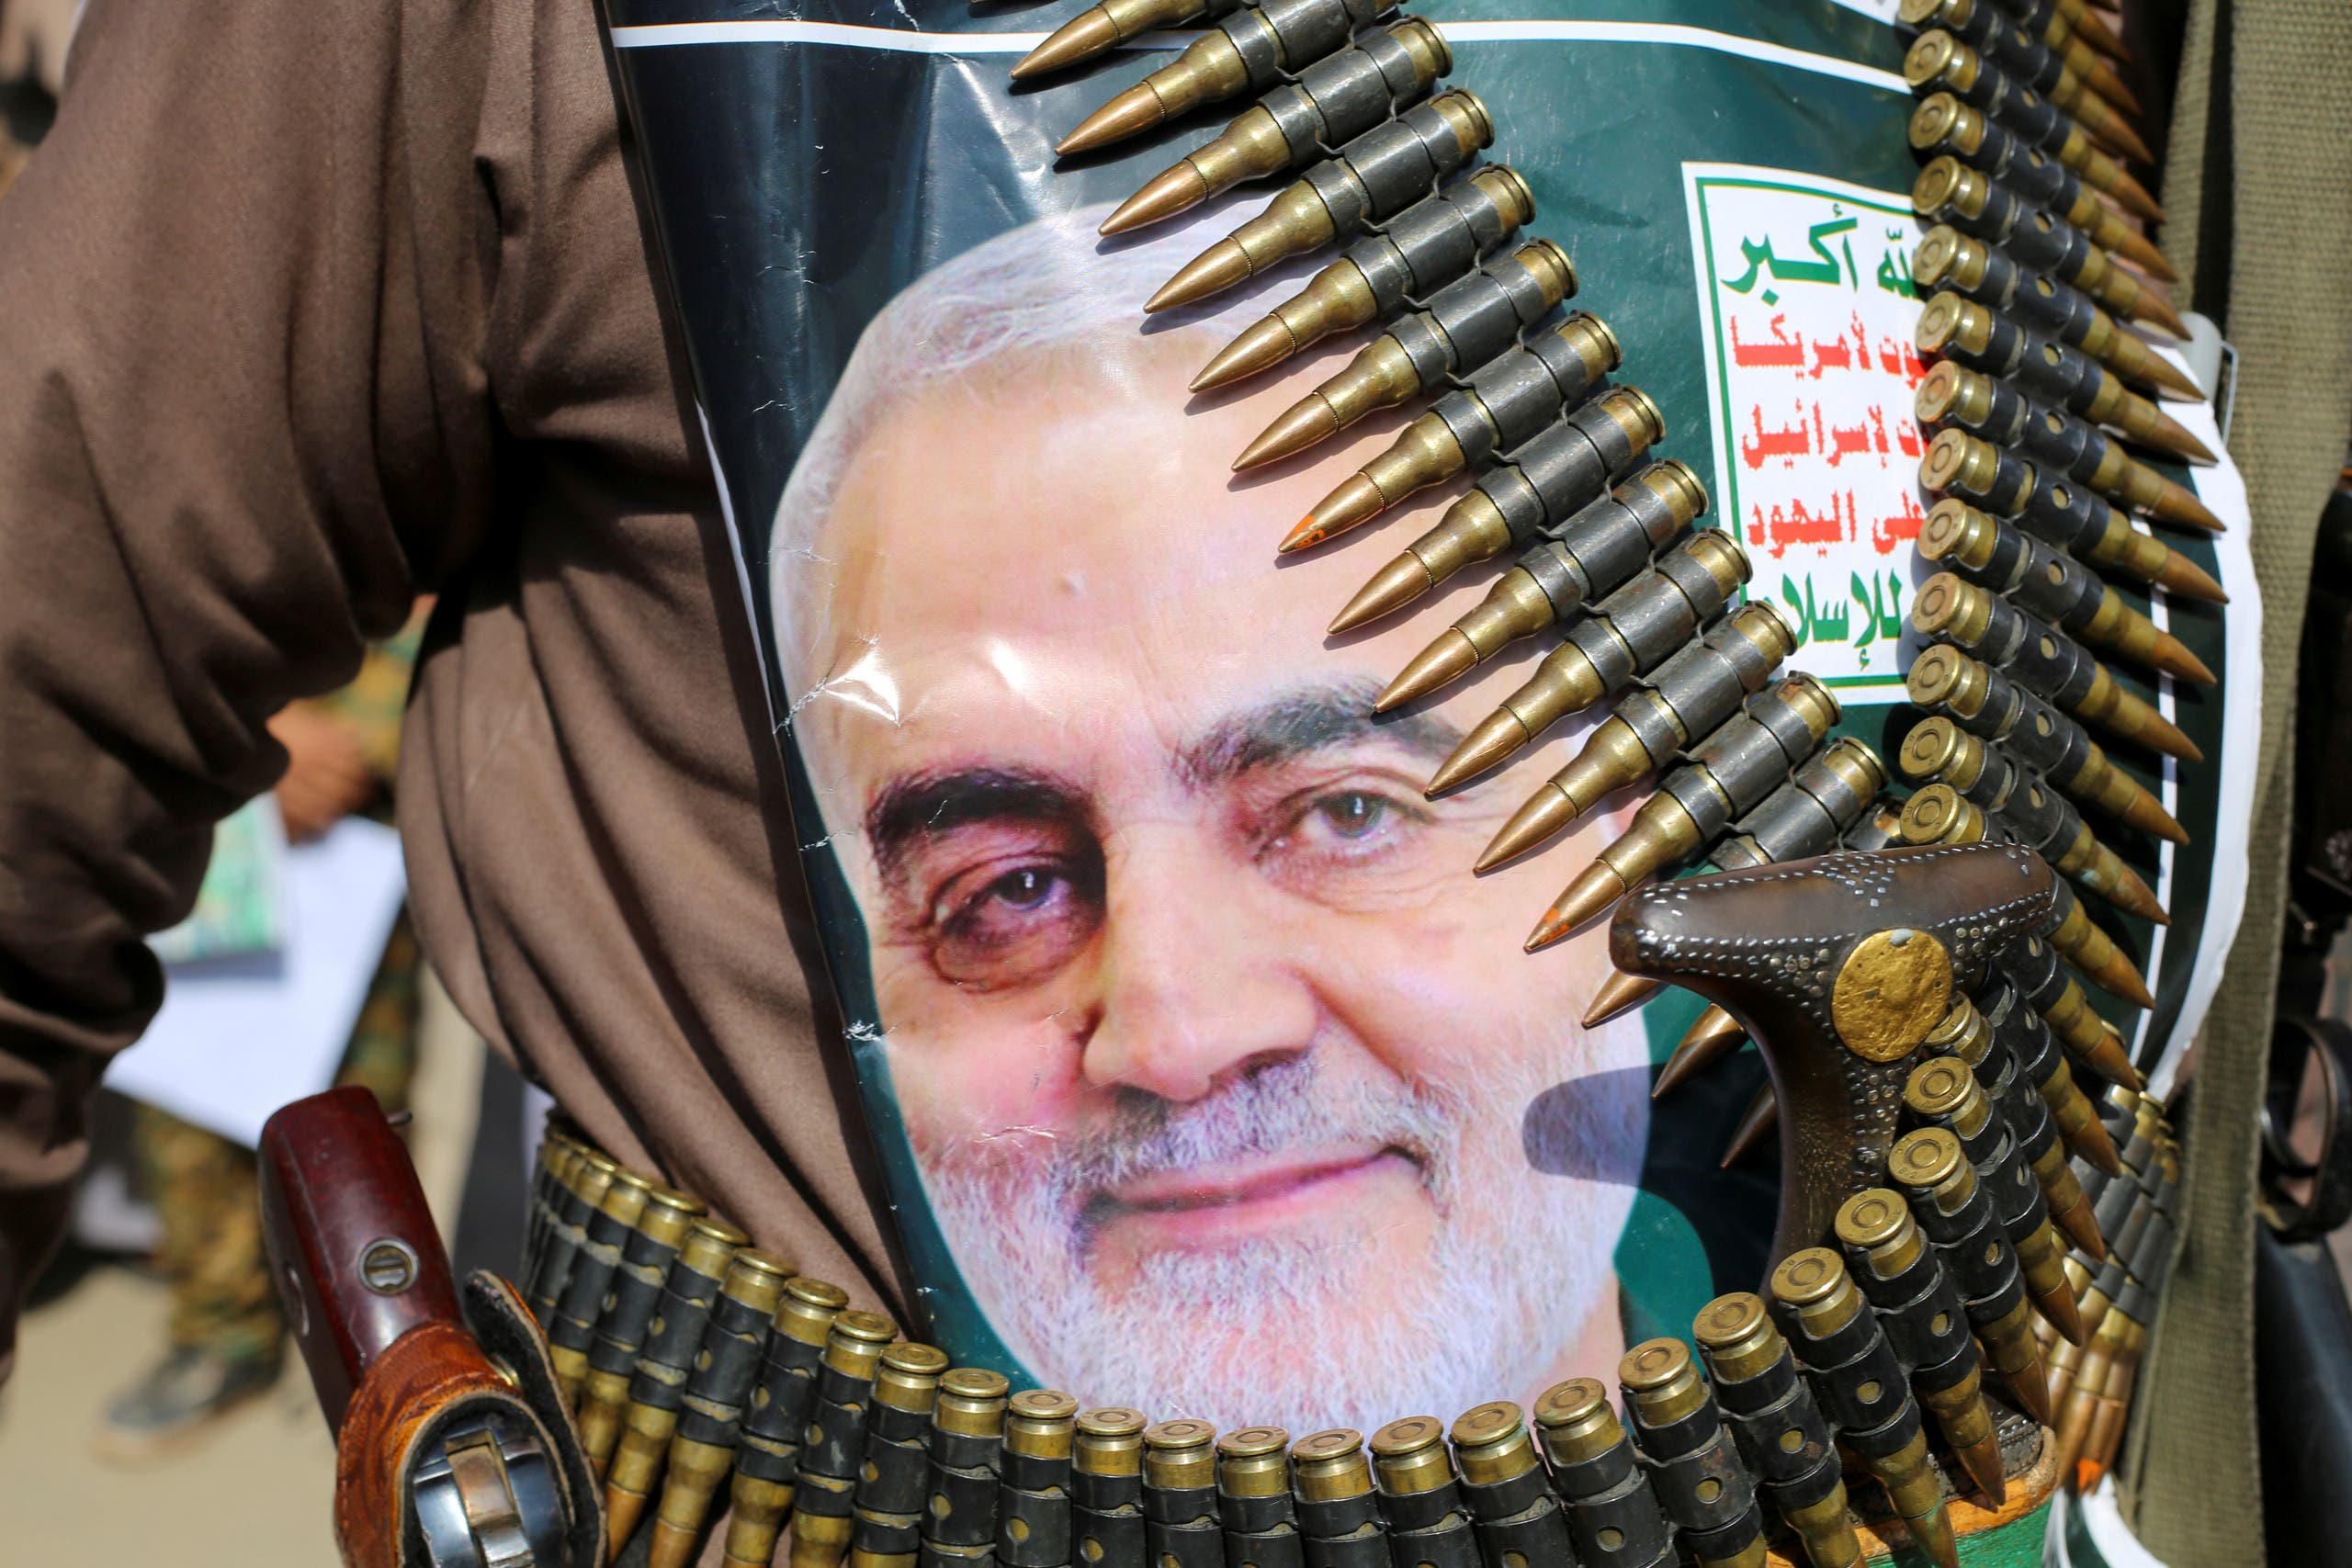 A supporter of the Houthis in Yemen has a poster attached to his waist of Iranian Major-General Qassem Soleimani, head of the Quds Force, who was killed in an air strike at Baghdad airport. The writing on the poster reads: God is the Greatest, Death to America, Death to Israel, Curse on the Jews, Victory to Islam. (Reuters)